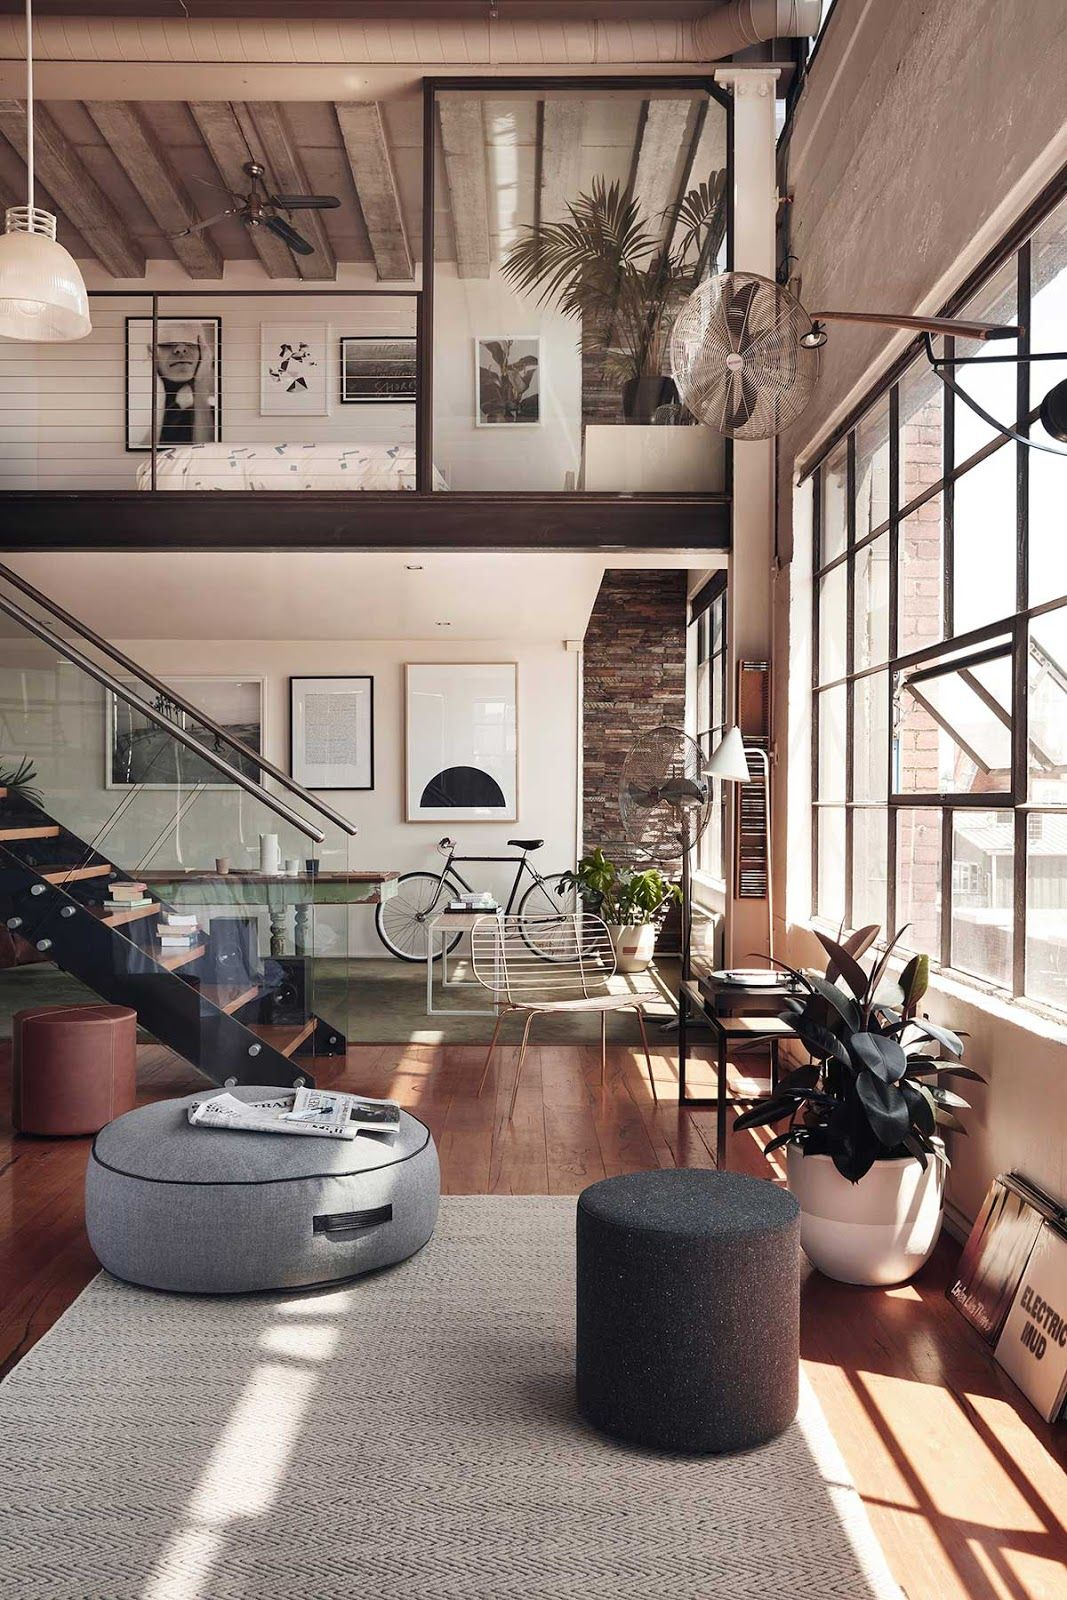 Superieur A Dreamy Collaboration Between Hunting For George + Grazia And Co. Love The  Soft And Cozy Vibe Of The Loft Mixed With The Industrial Design.